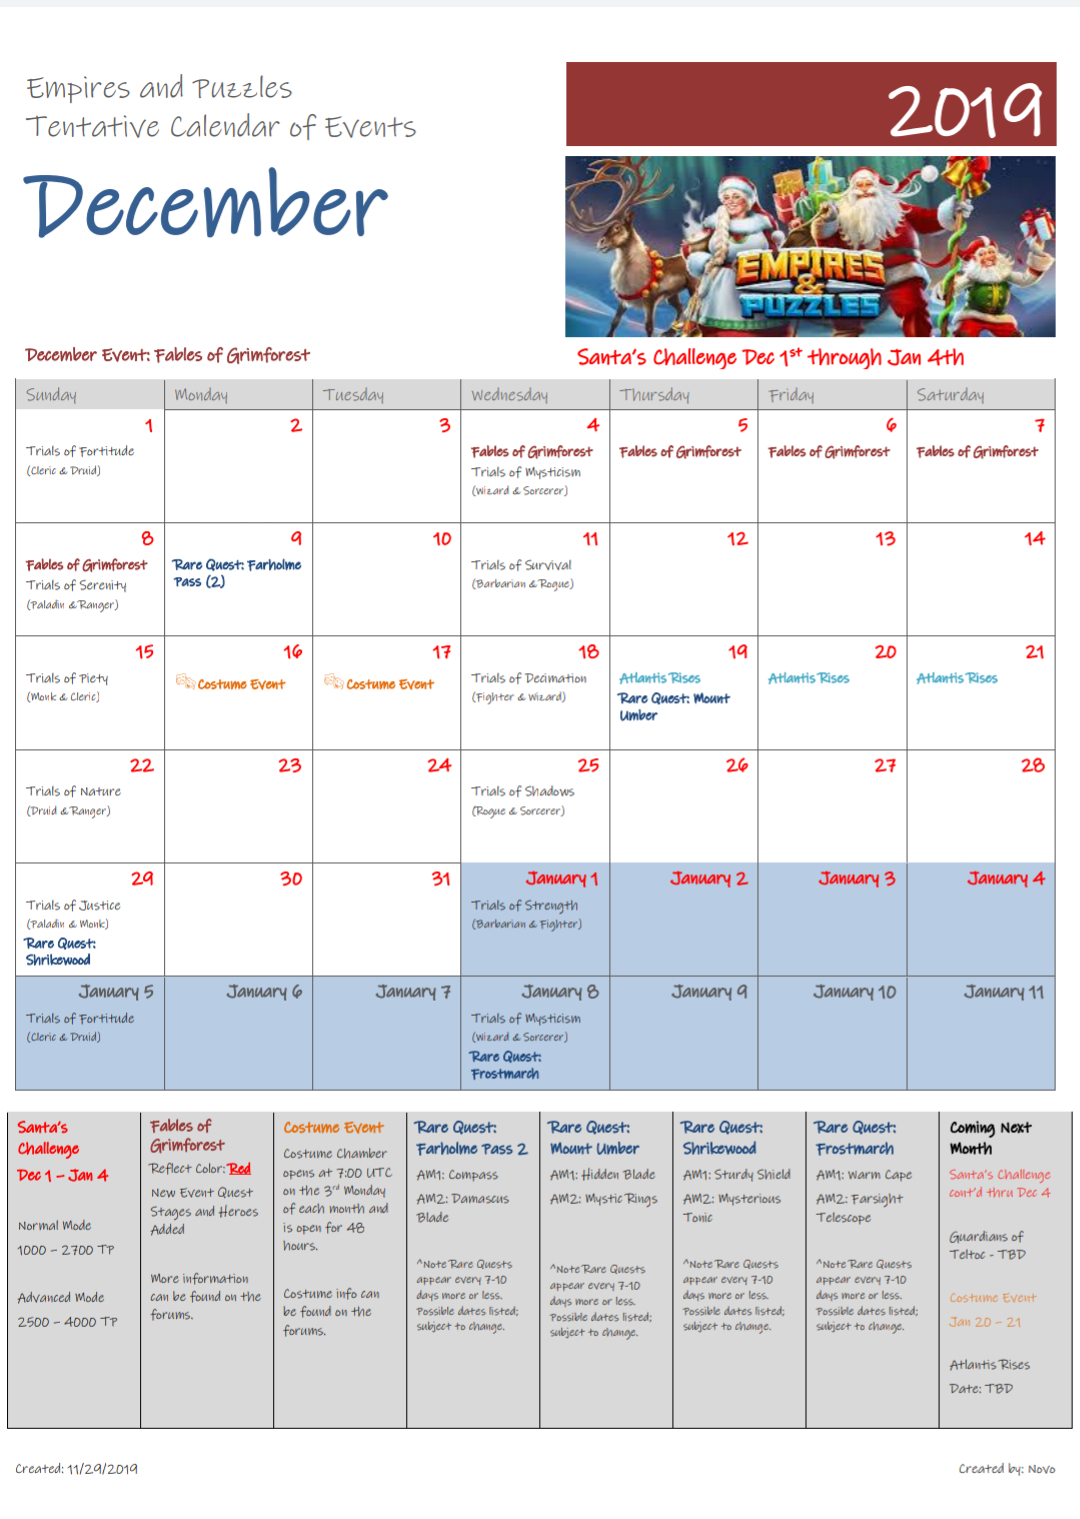 December 2019 Calendar Of Events : Empiresandpuzzles inside Empires And Puzzles Calendar